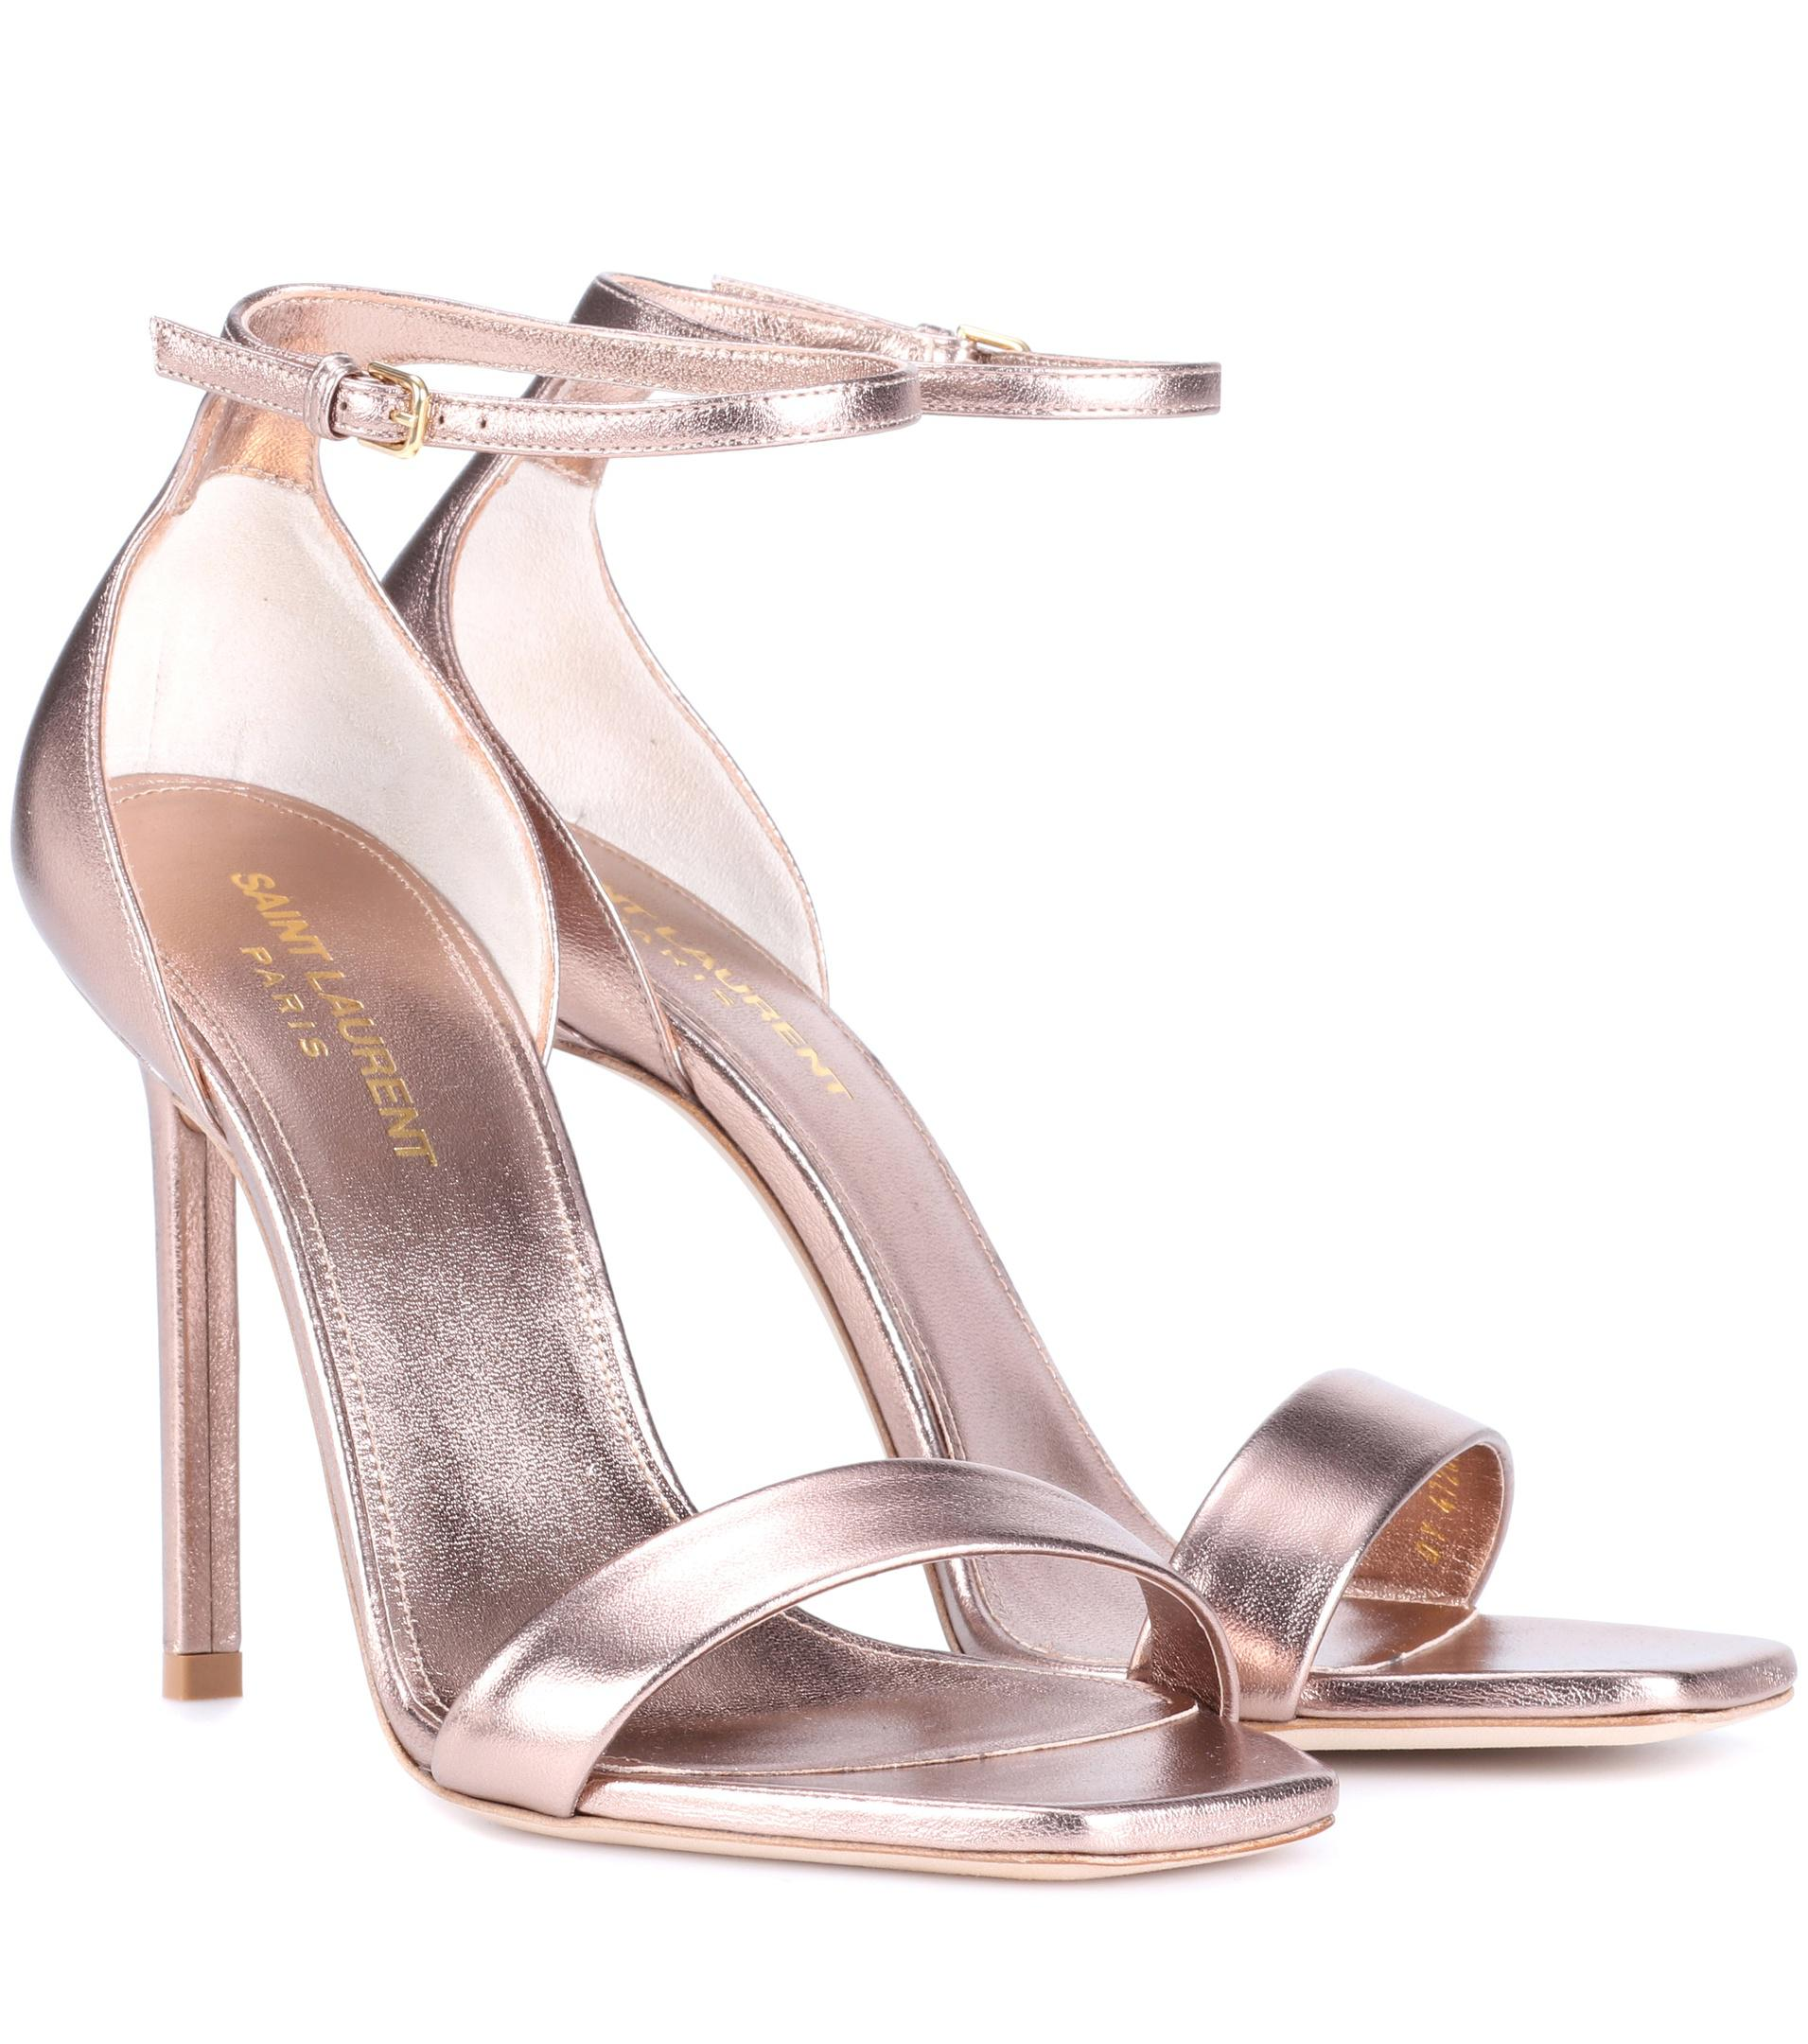 675bf058a32f Saint Laurent Amber 105 Leather Sandals in Pink - Lyst